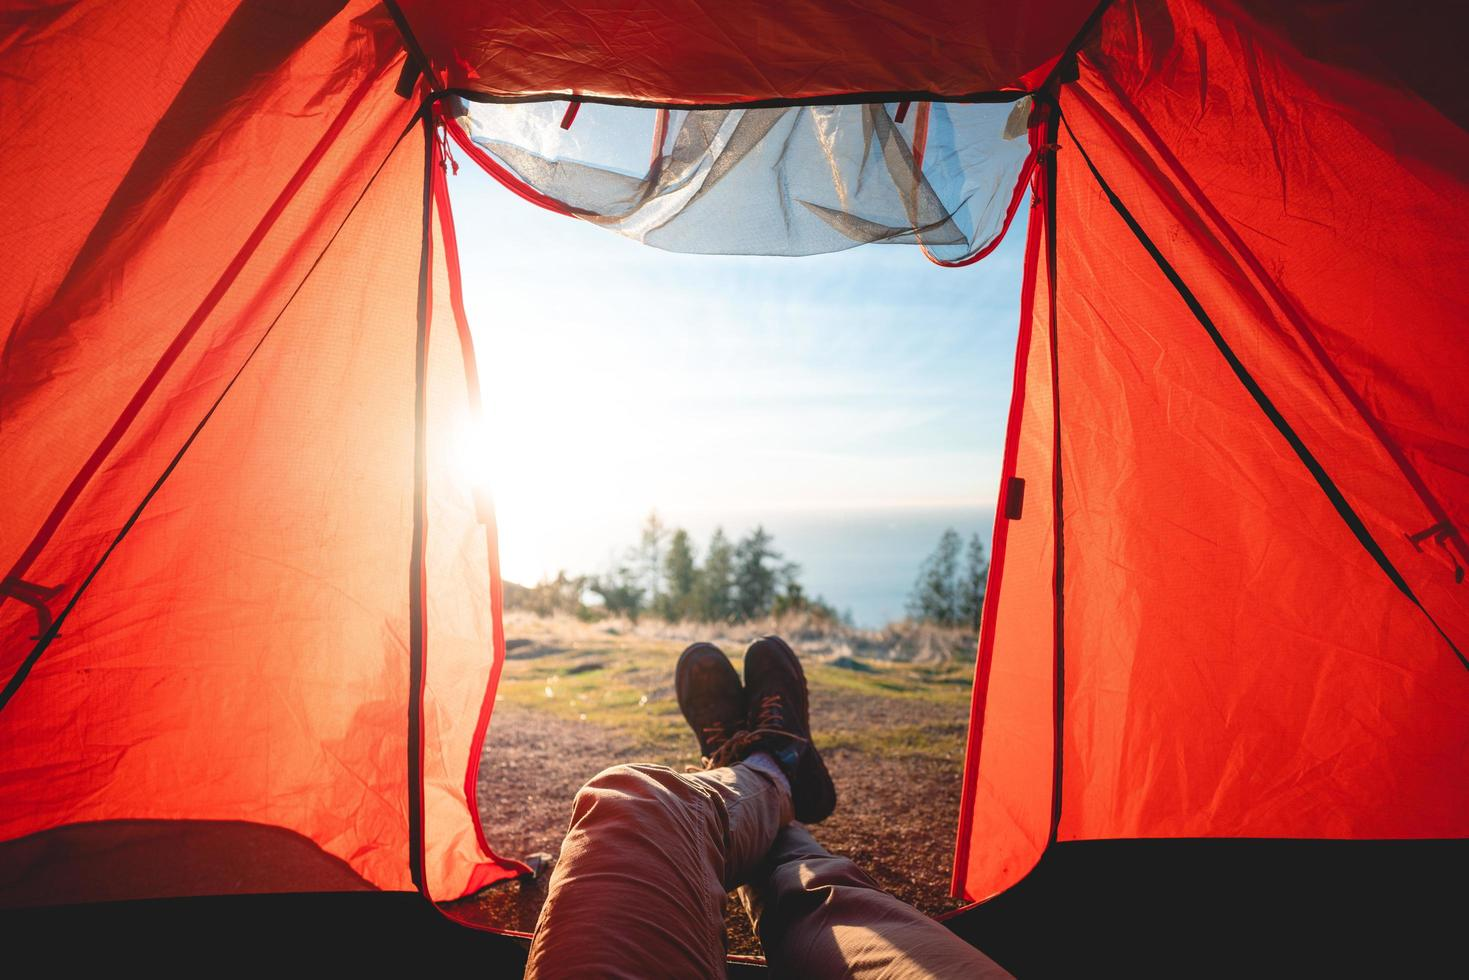 Person lying inside tent photo